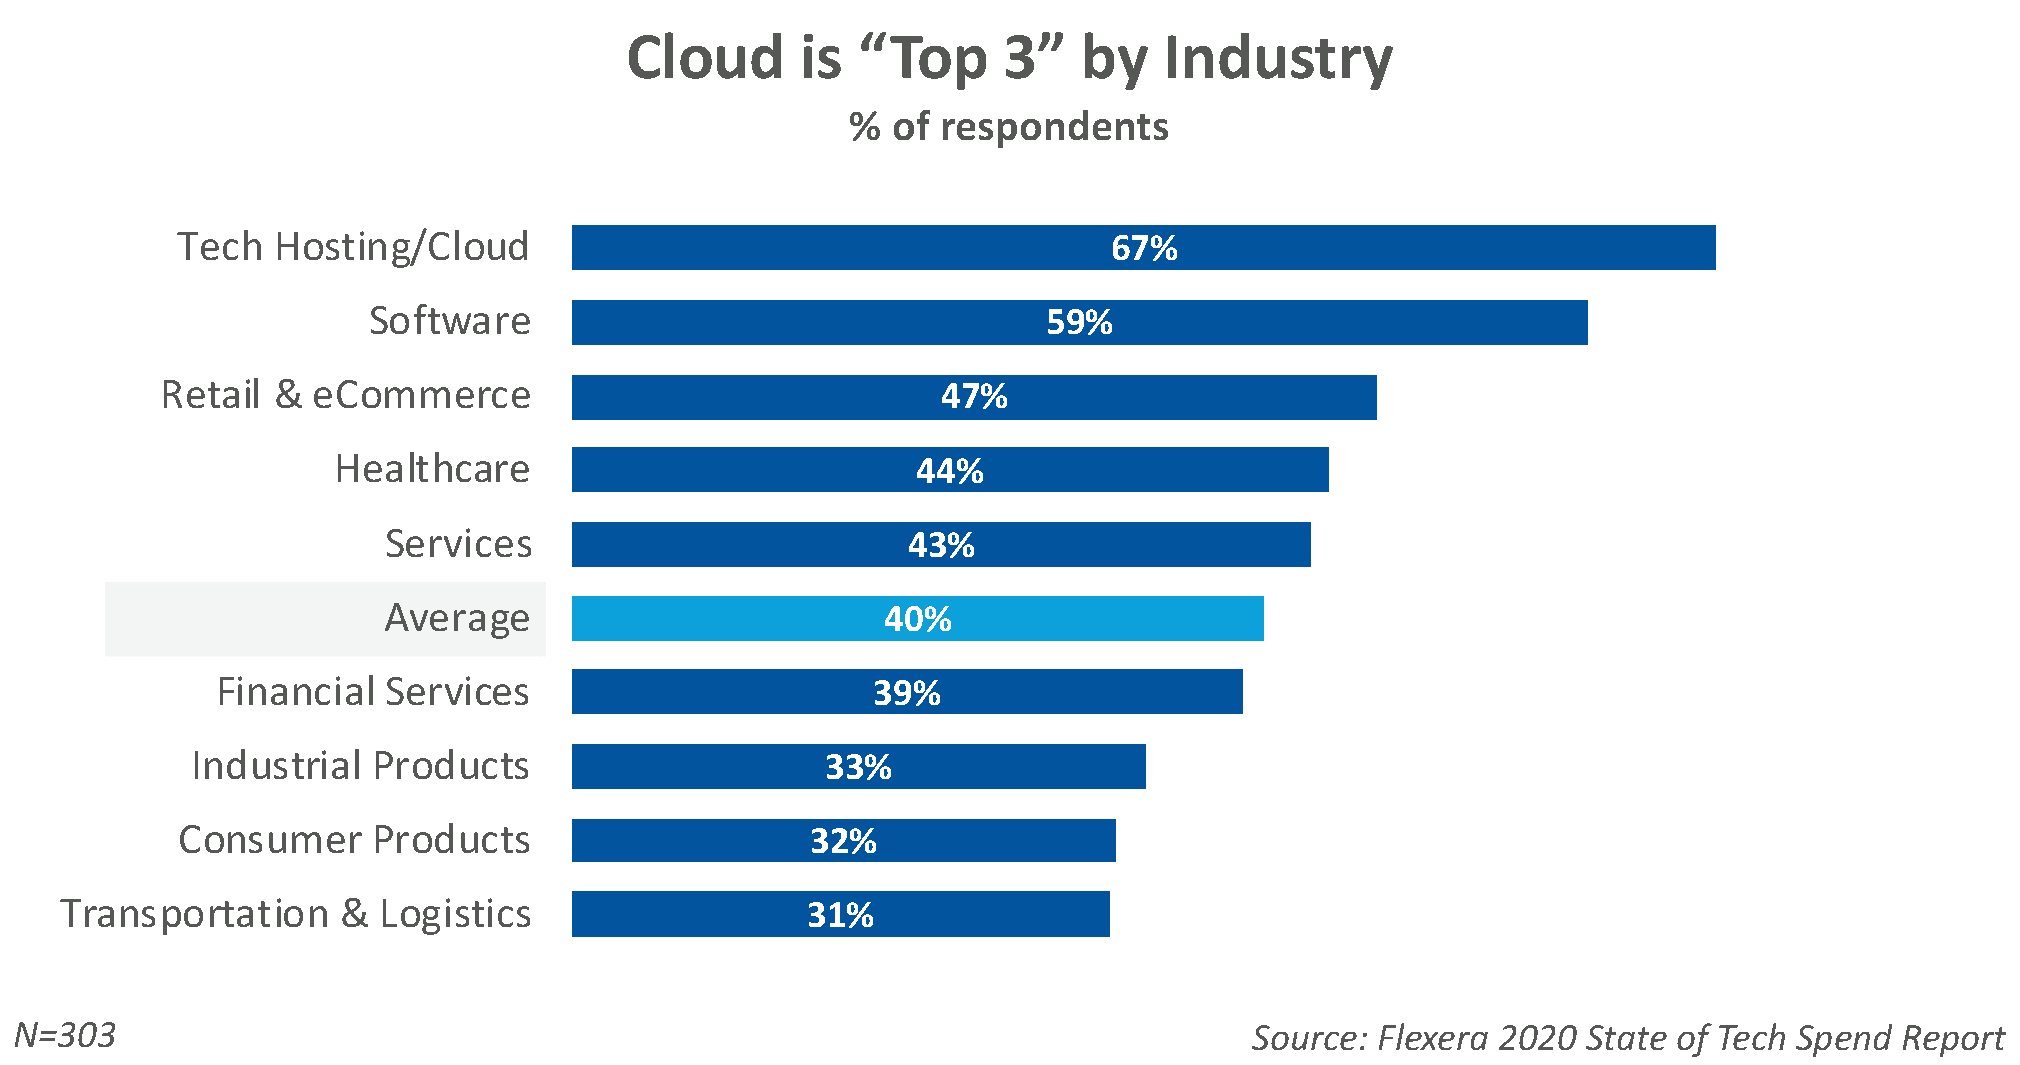 Cloud Initiatives by Industry